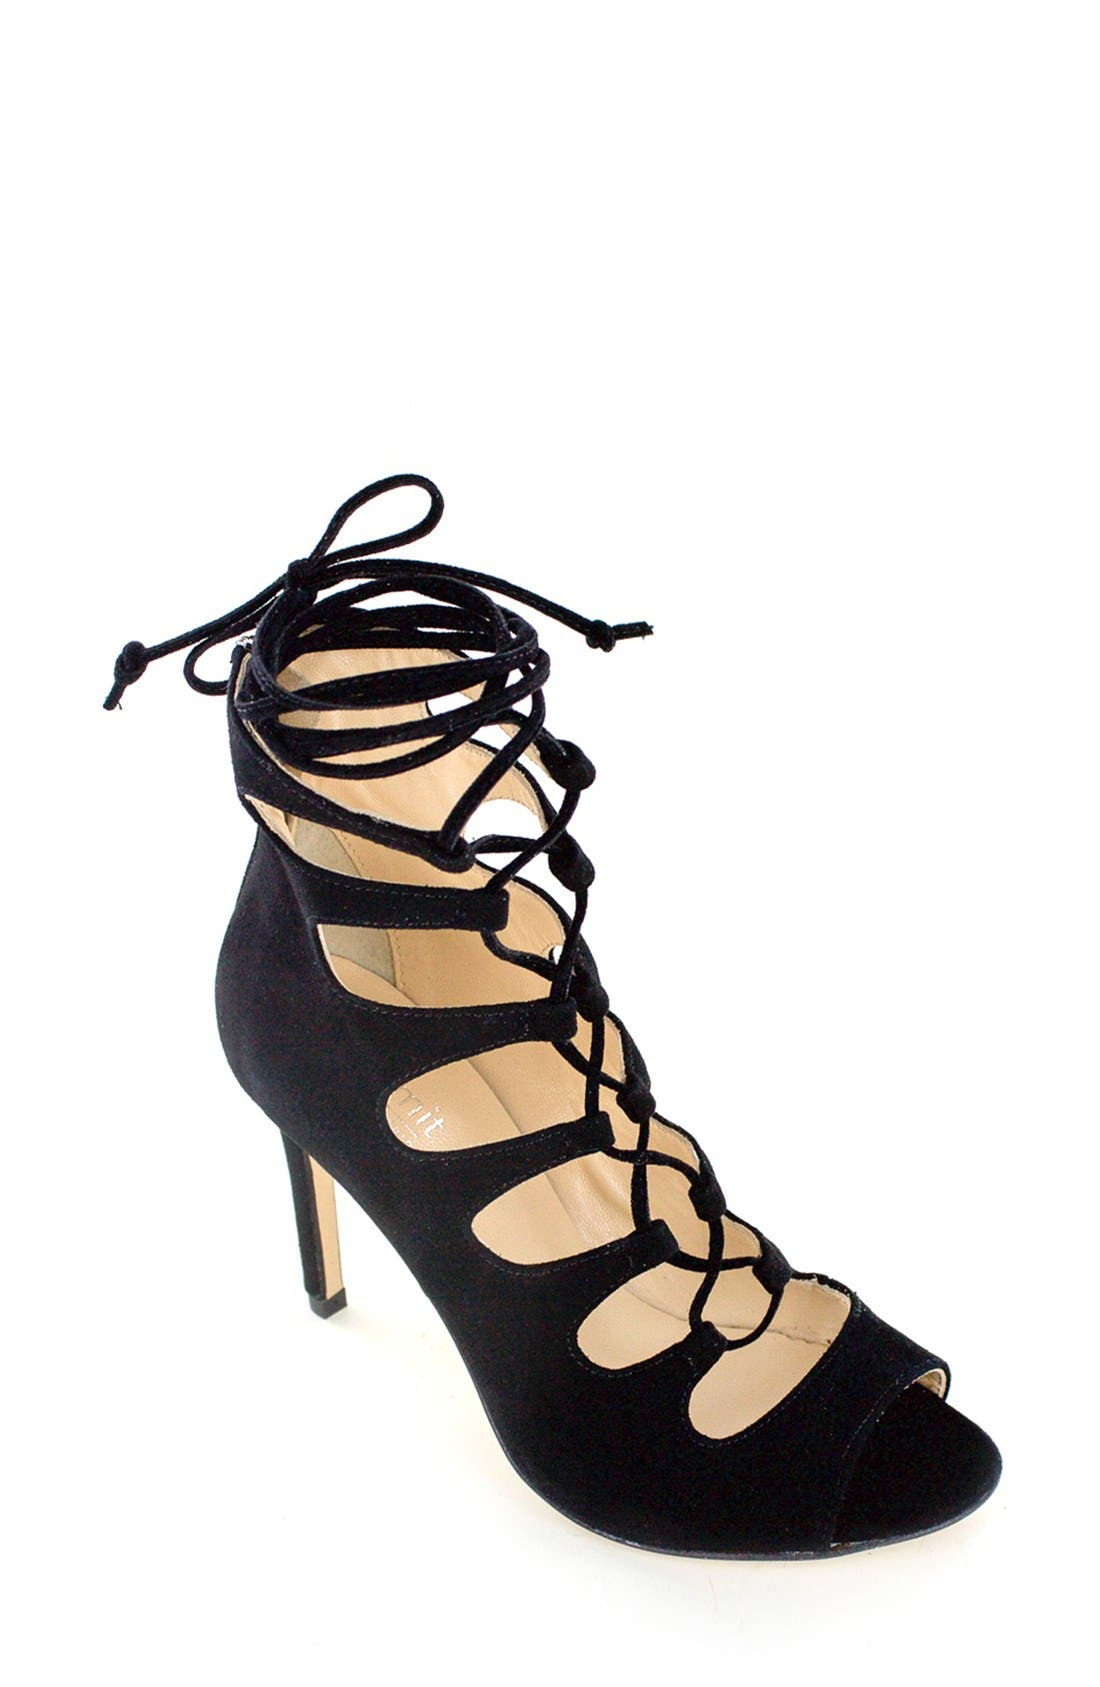 Alternate Image 1 Selected - Summit 'Maeve' Ghillie Sandal (Women)